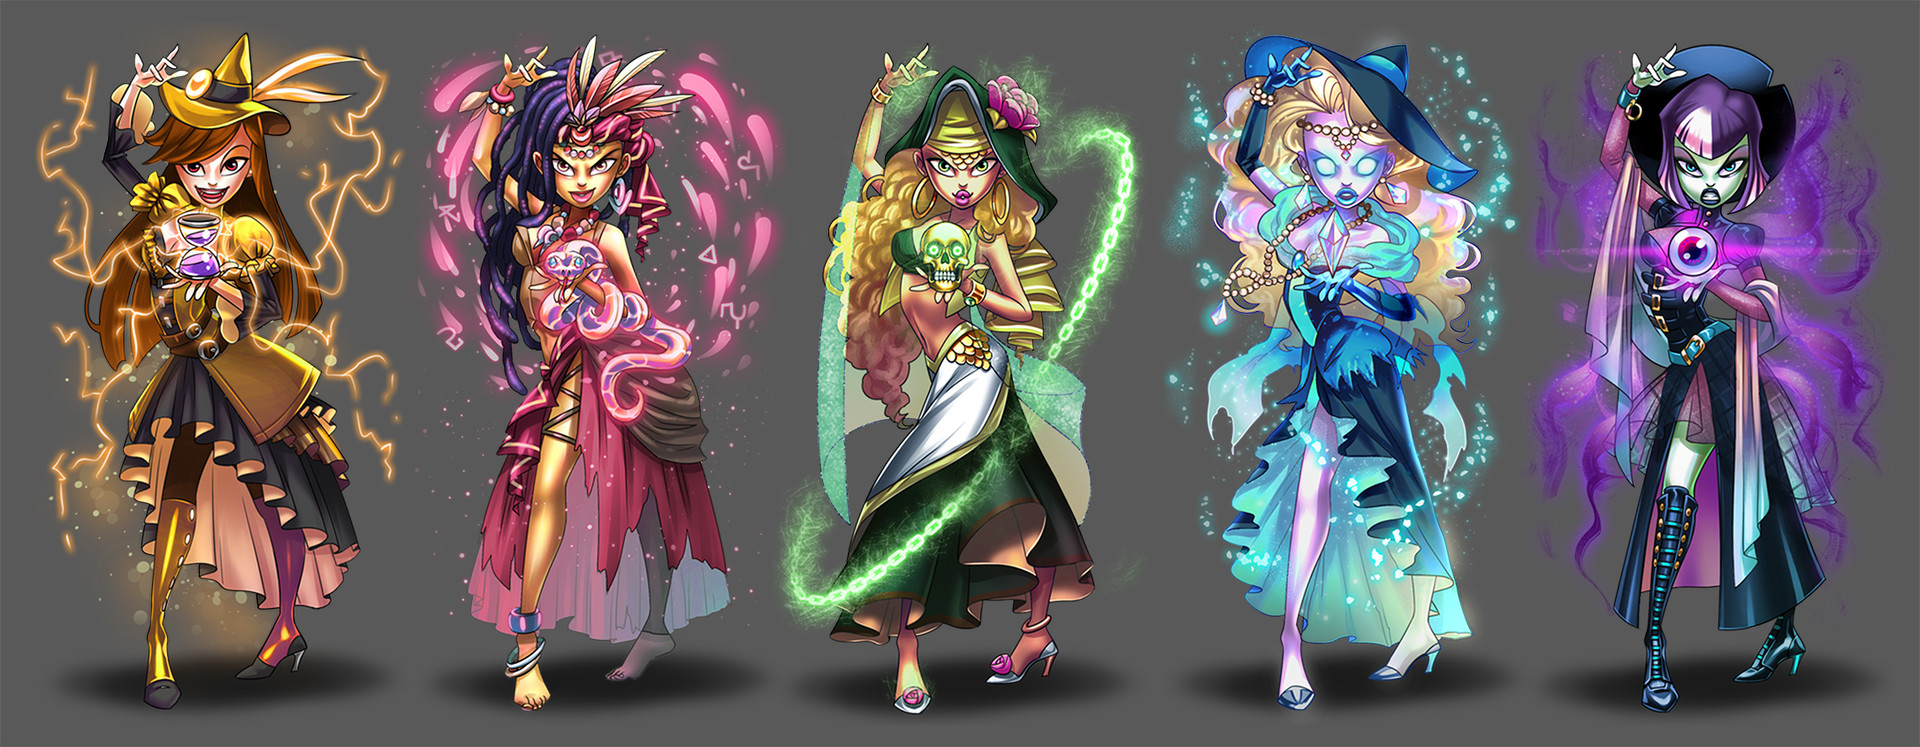 Evelin unfer select witches